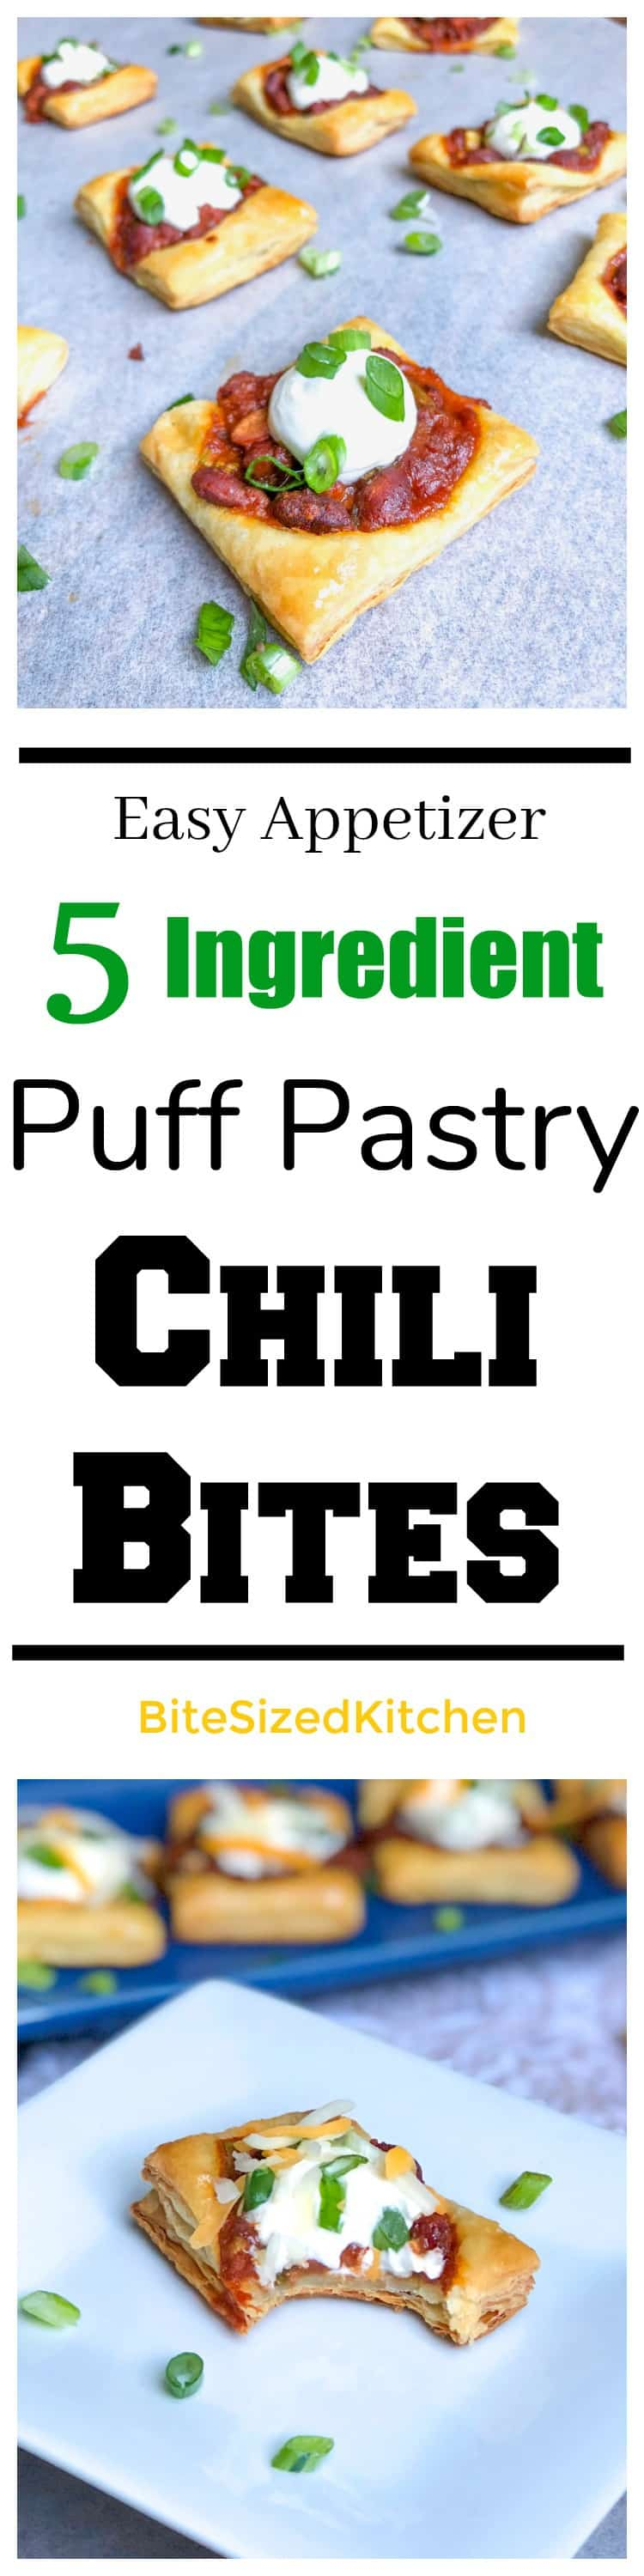 Easy Puff Pastry Appetizer Recipe with Chili